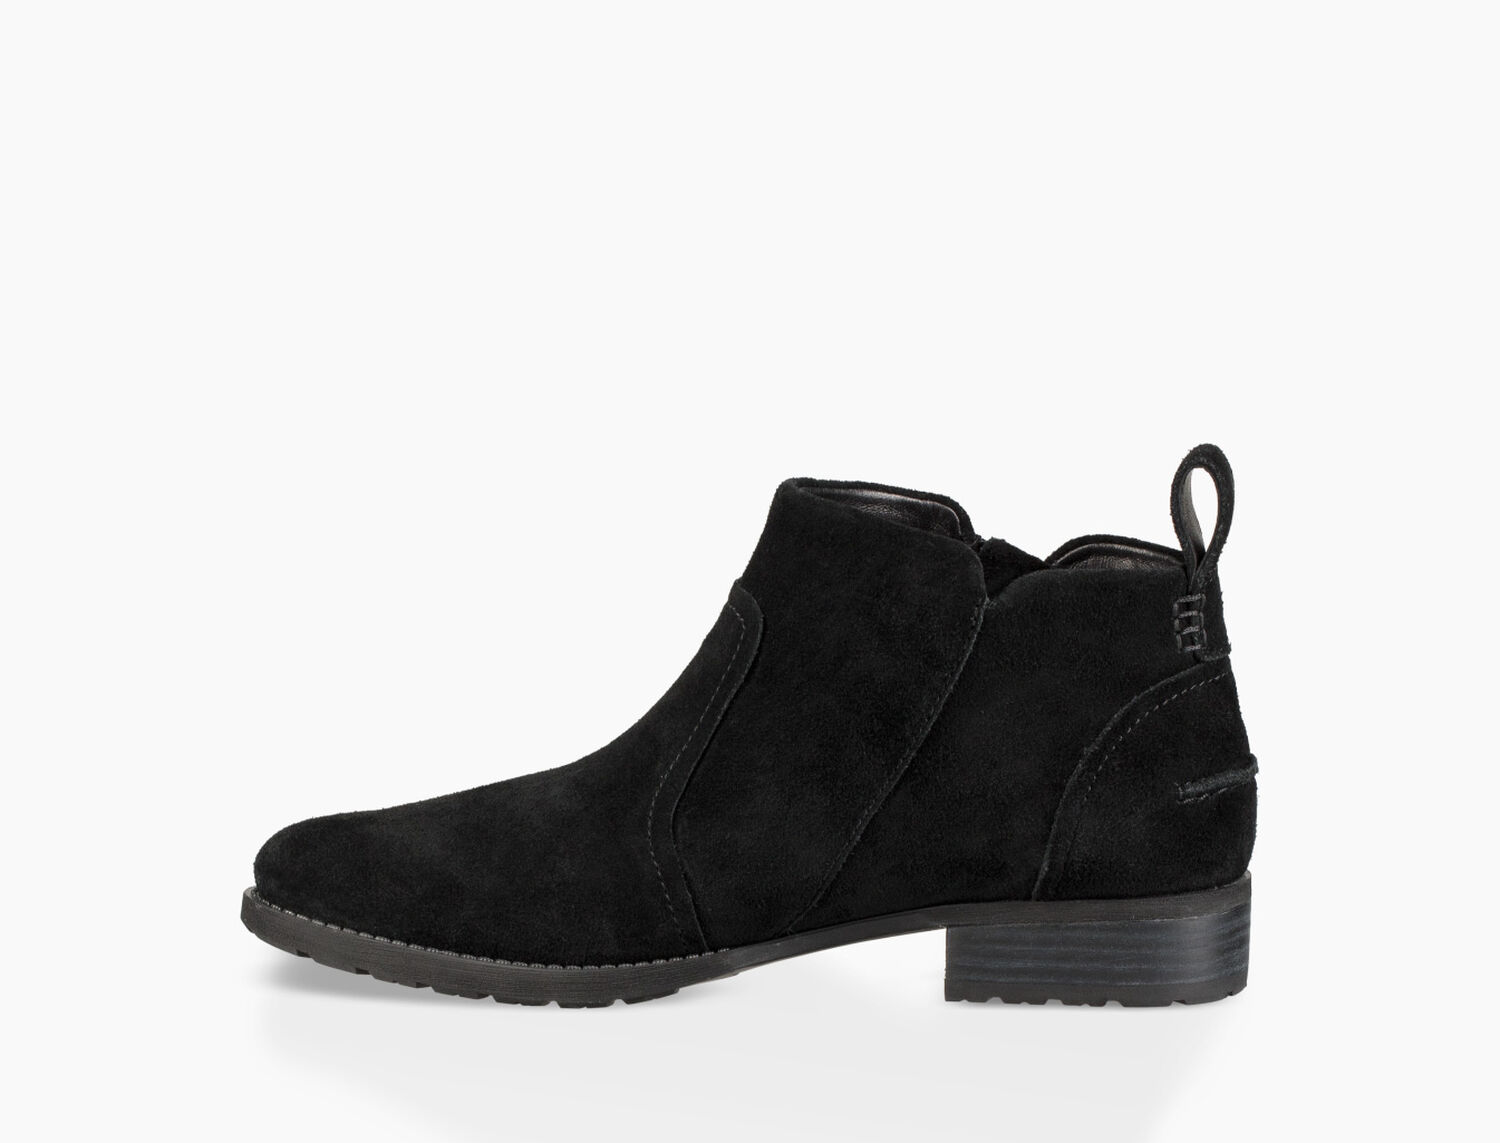 e2a9ef30a8d Women's Share this product Aureo Boot